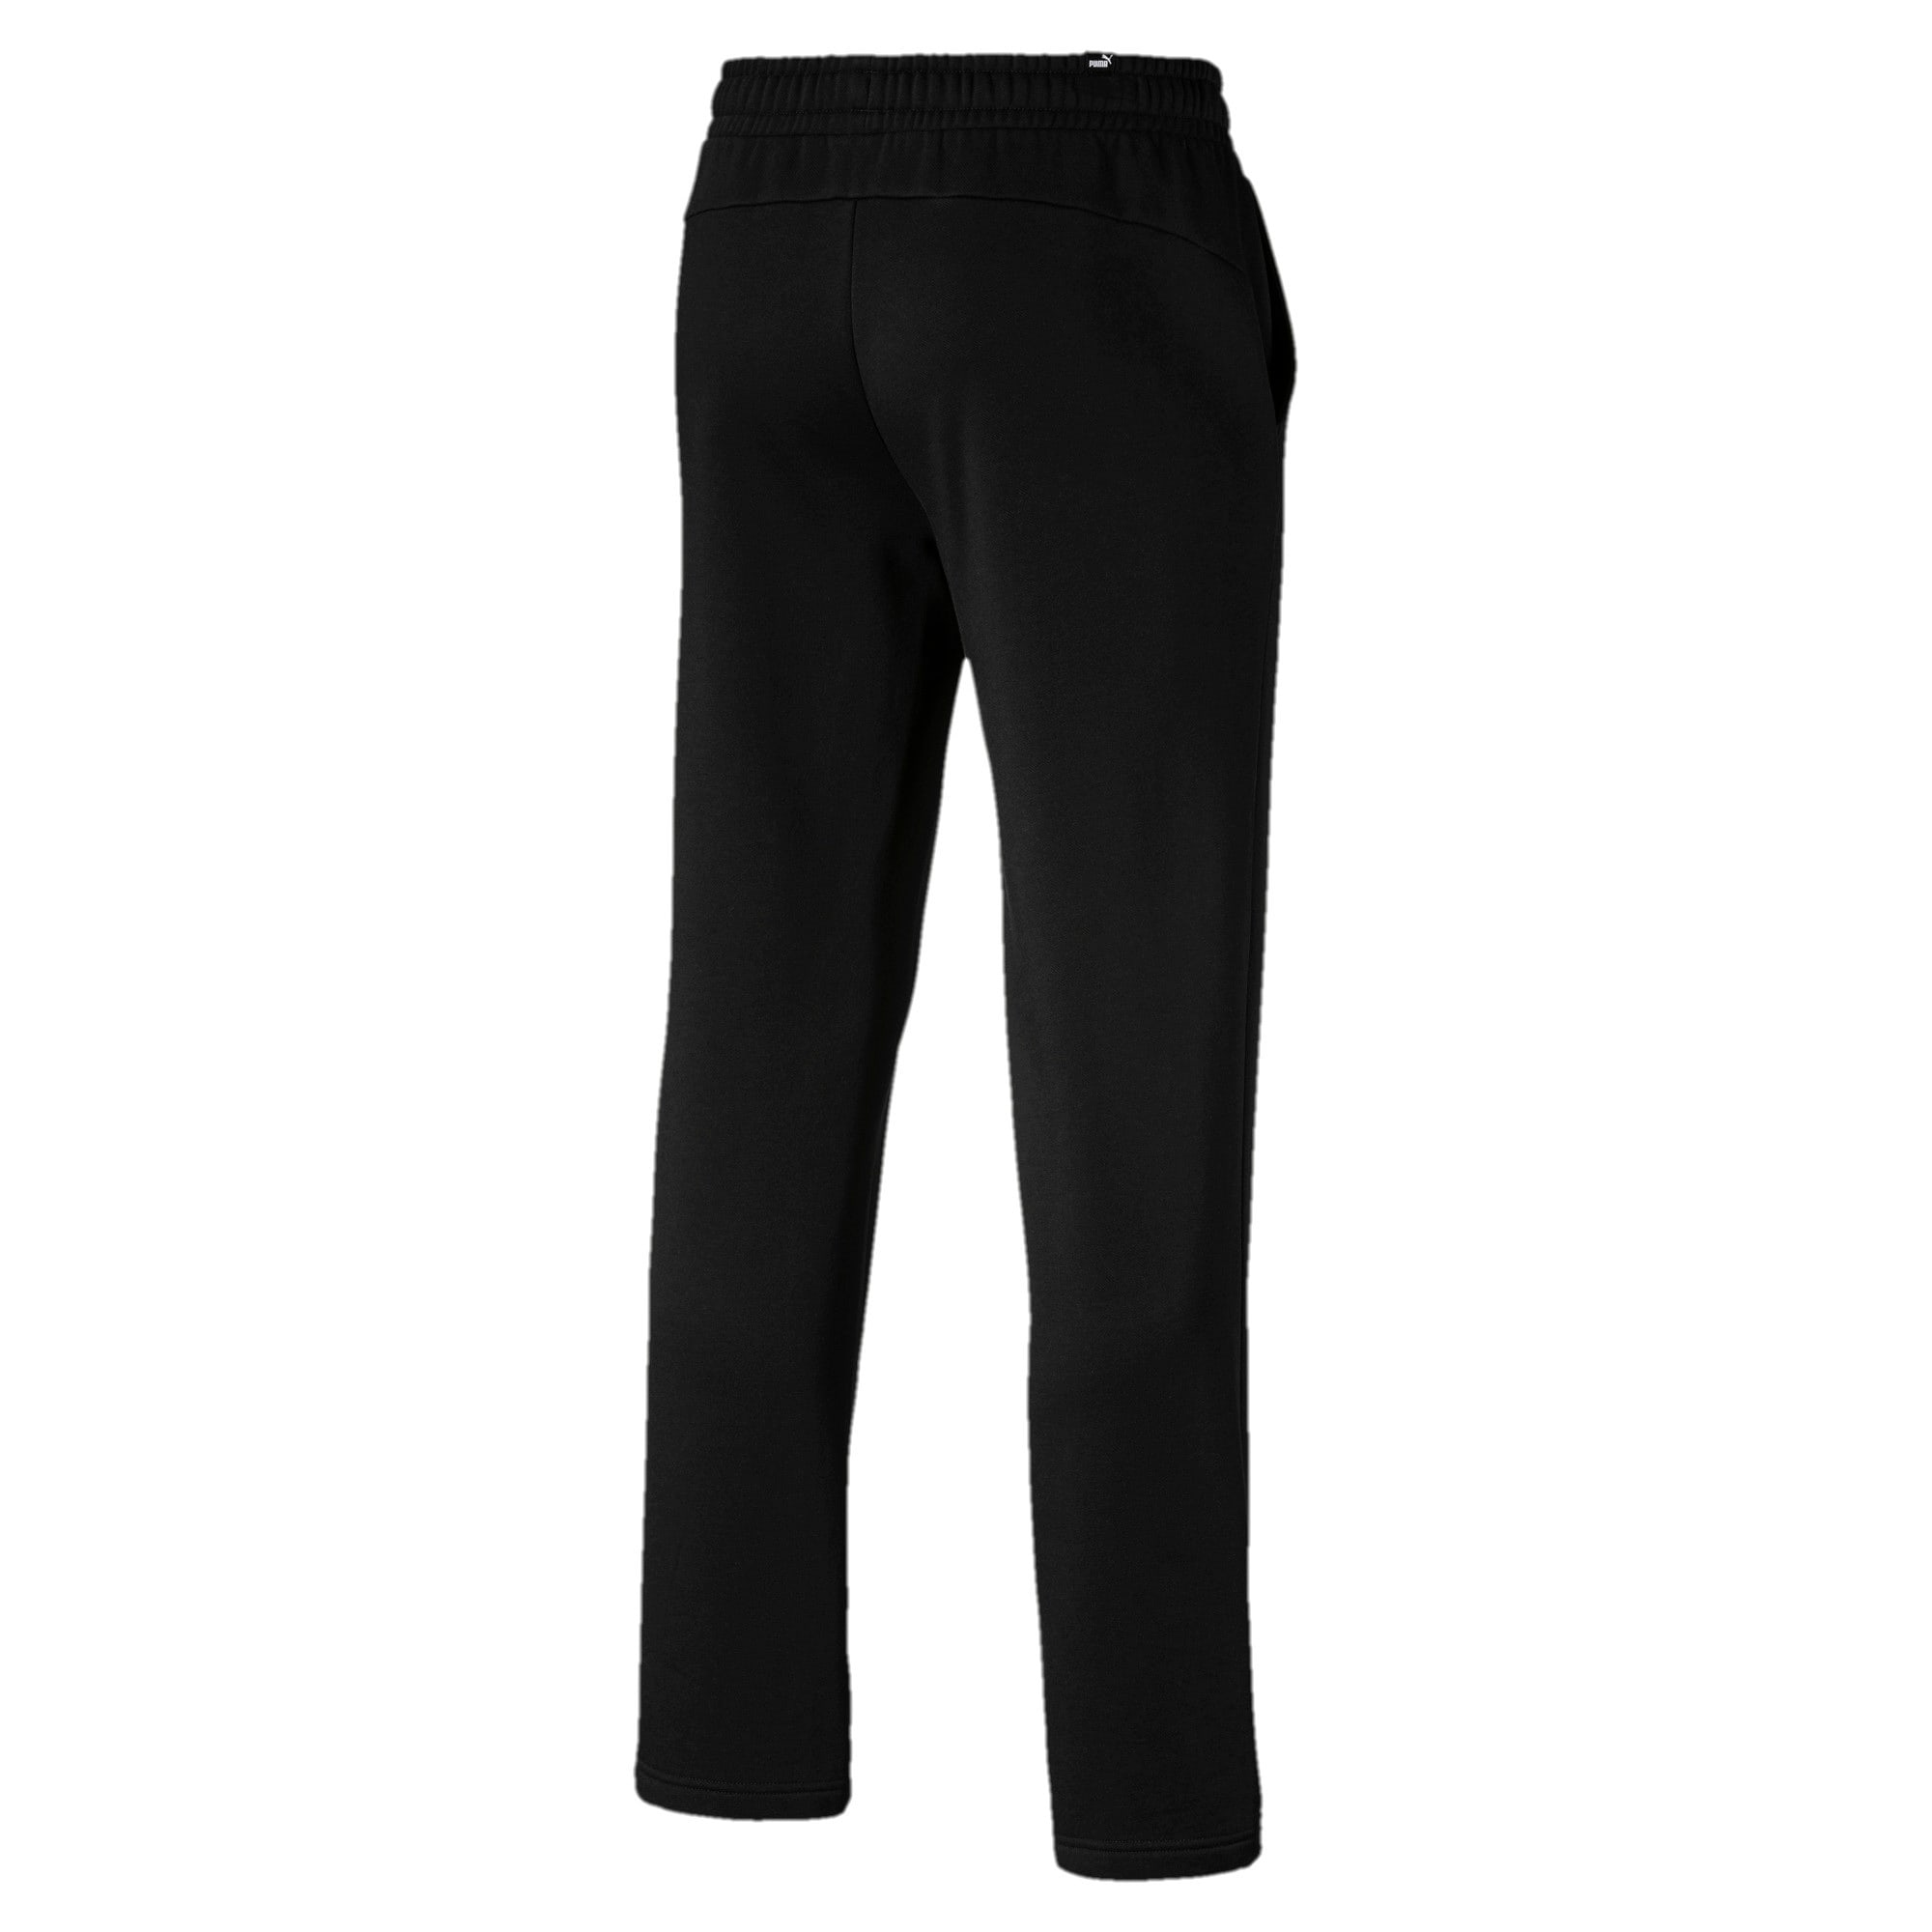 Thumbnail 2 of Essentials Men's Fleece Pants, Puma Black, medium